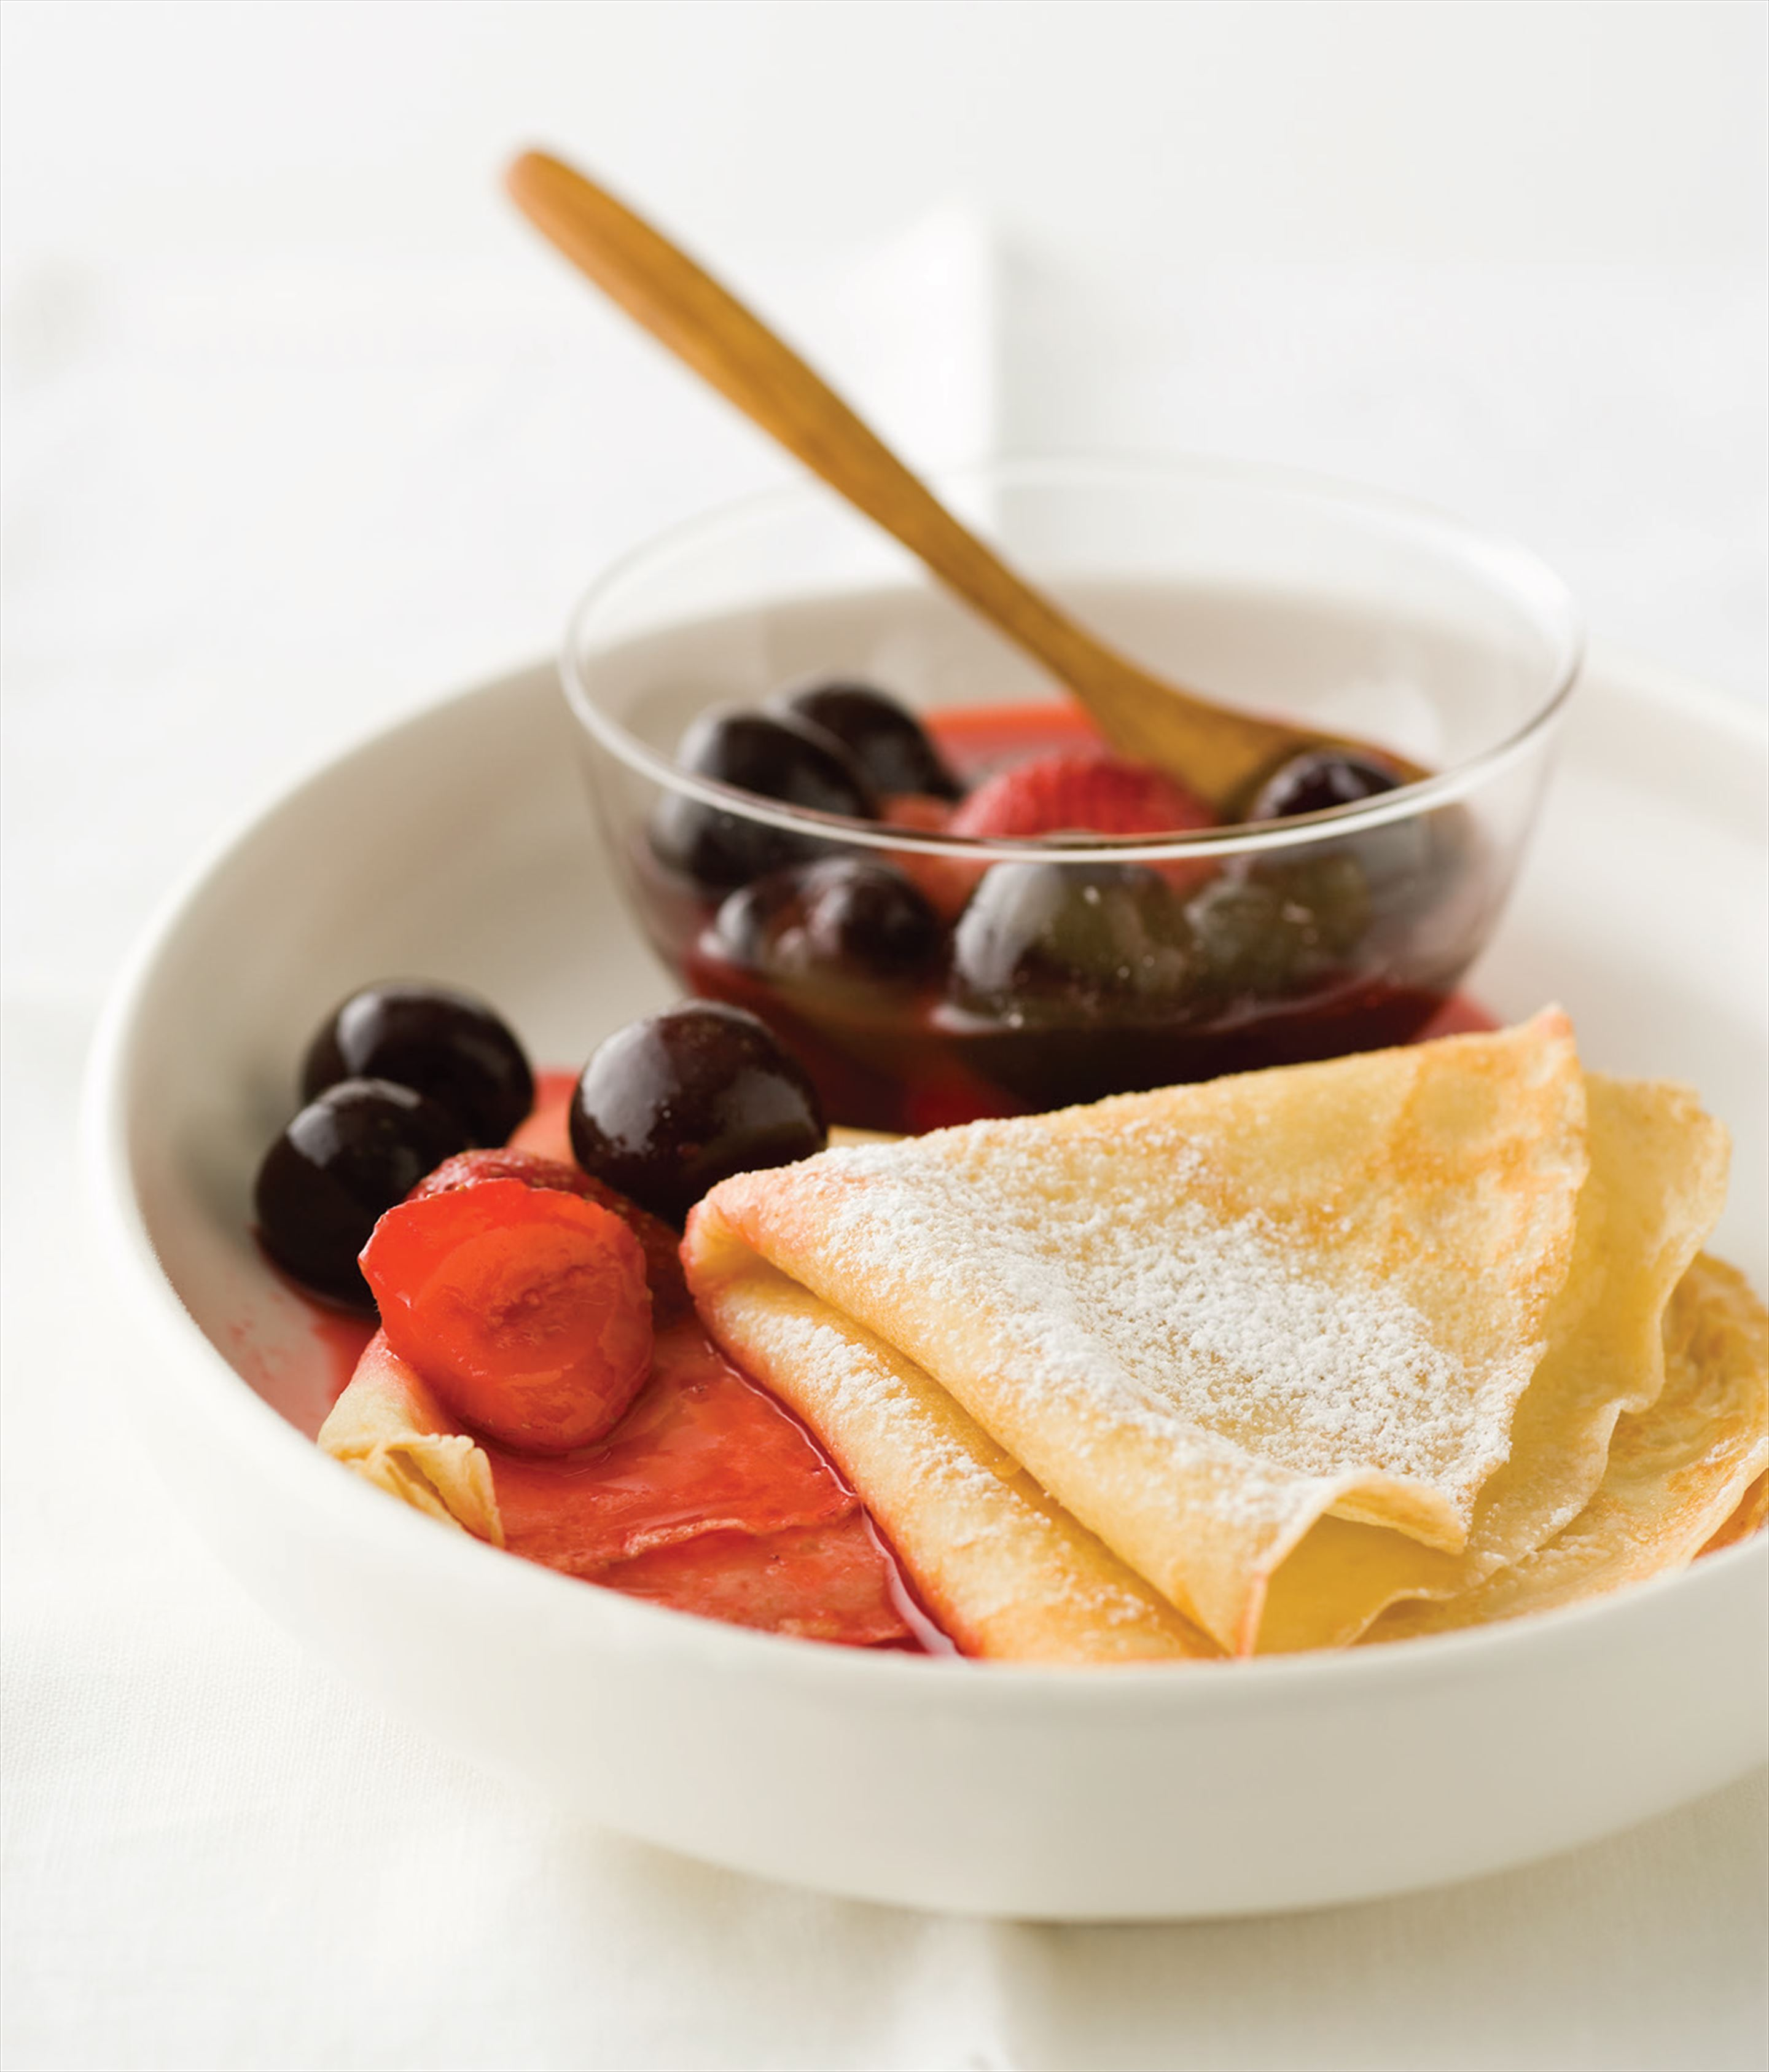 French crêpes with poached cherries and berries